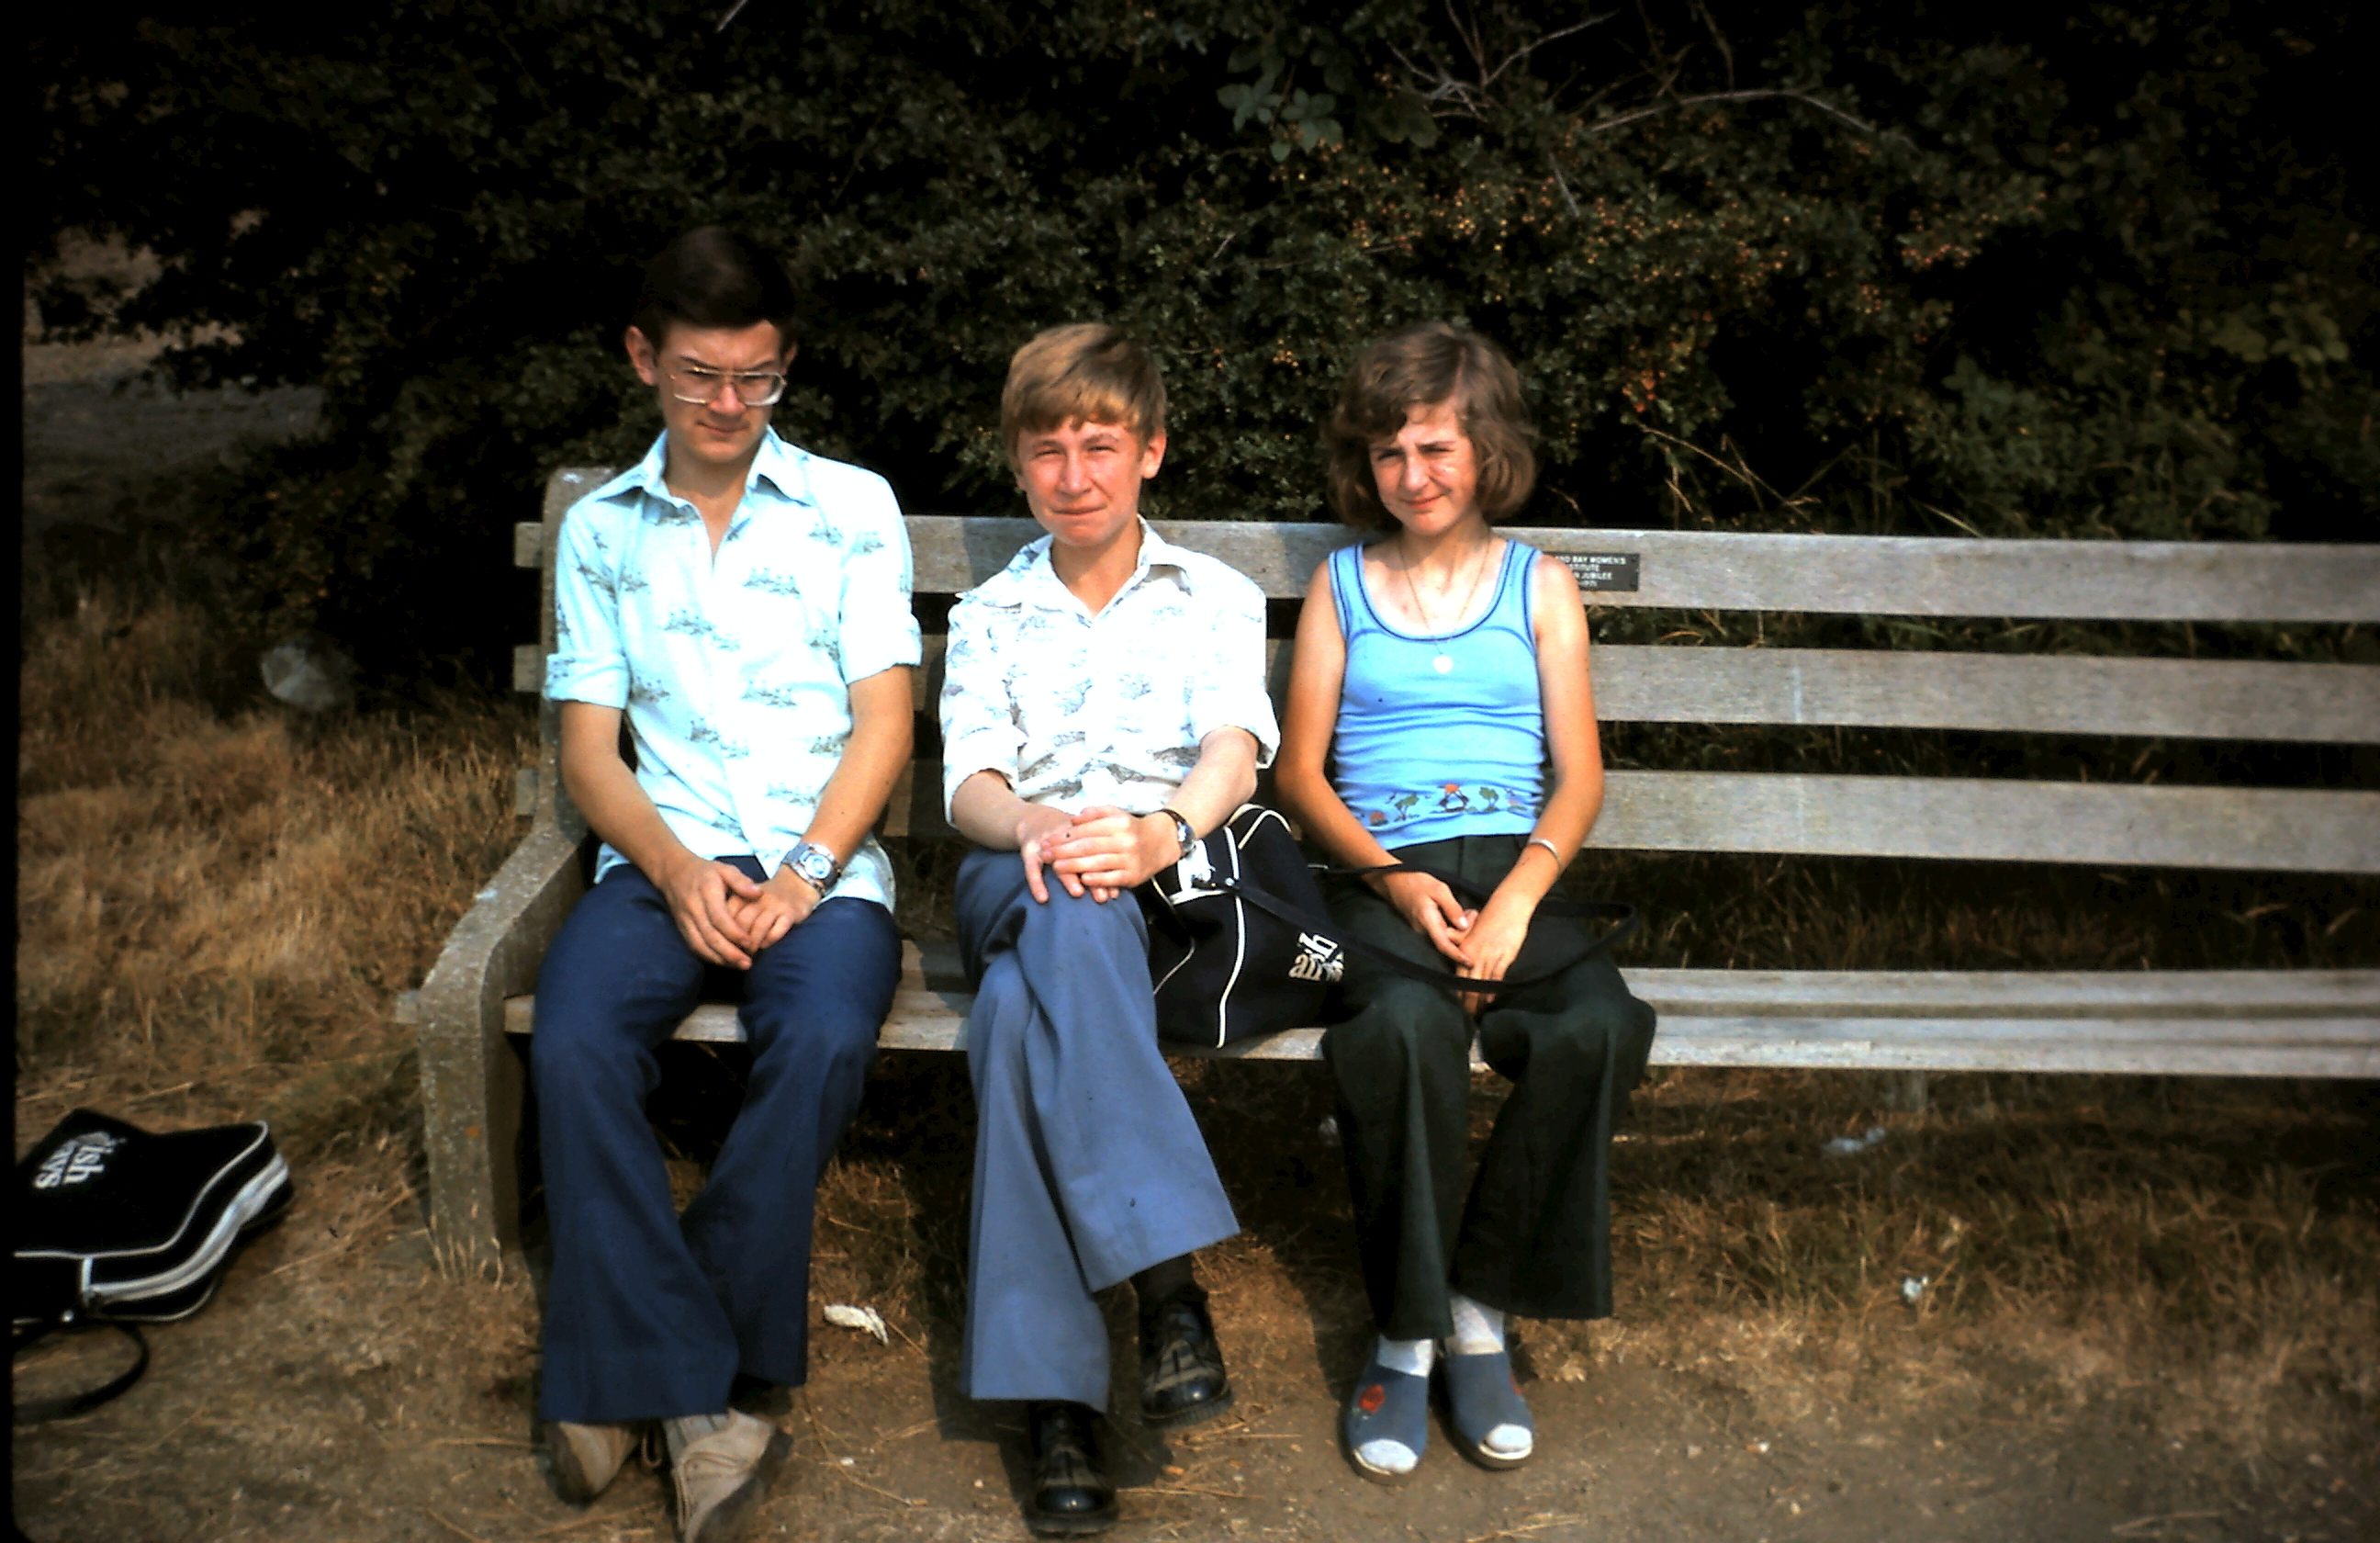 The author sits on a bench with brother Mark to his right and his sister Dawn on his right.  The clothing is very seventies, with all wearing bell bottomed, flared trousers.  The author sits awkwardly with crossed legs and his hands clasped around his knees, rather camply